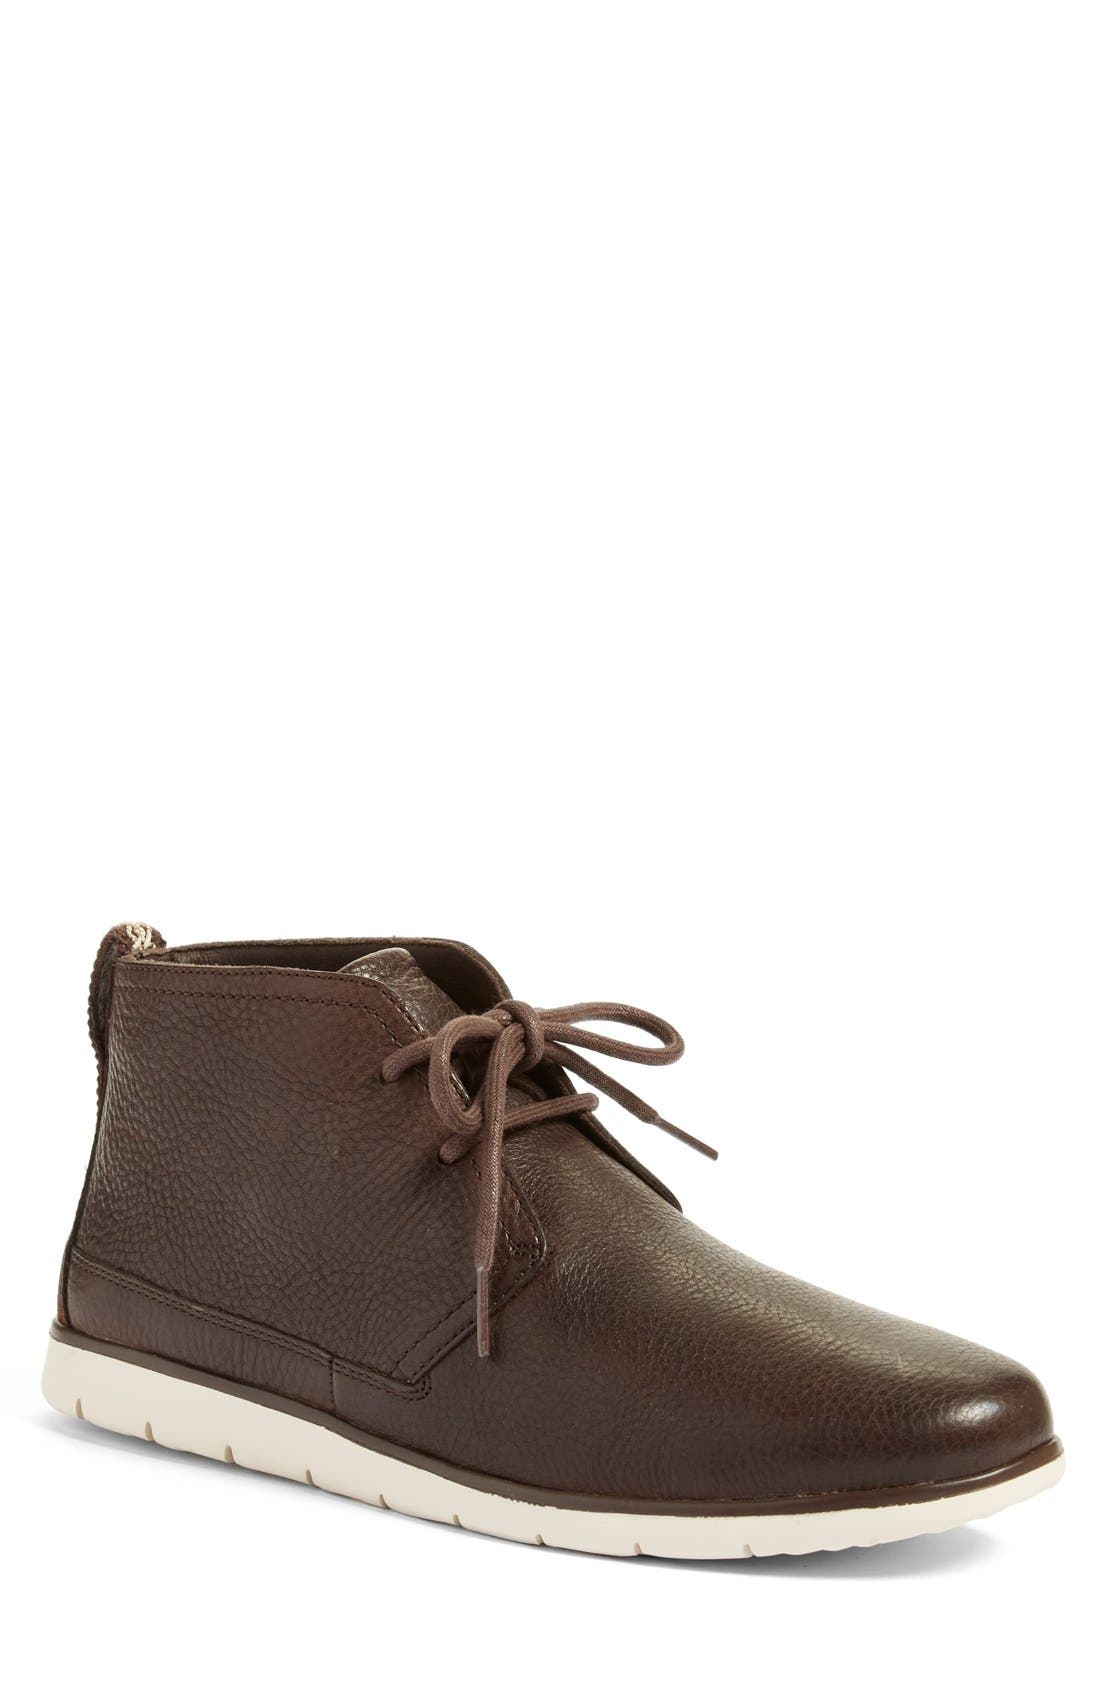 Main Image - UGG® Freamon Chukka Boot (Men)